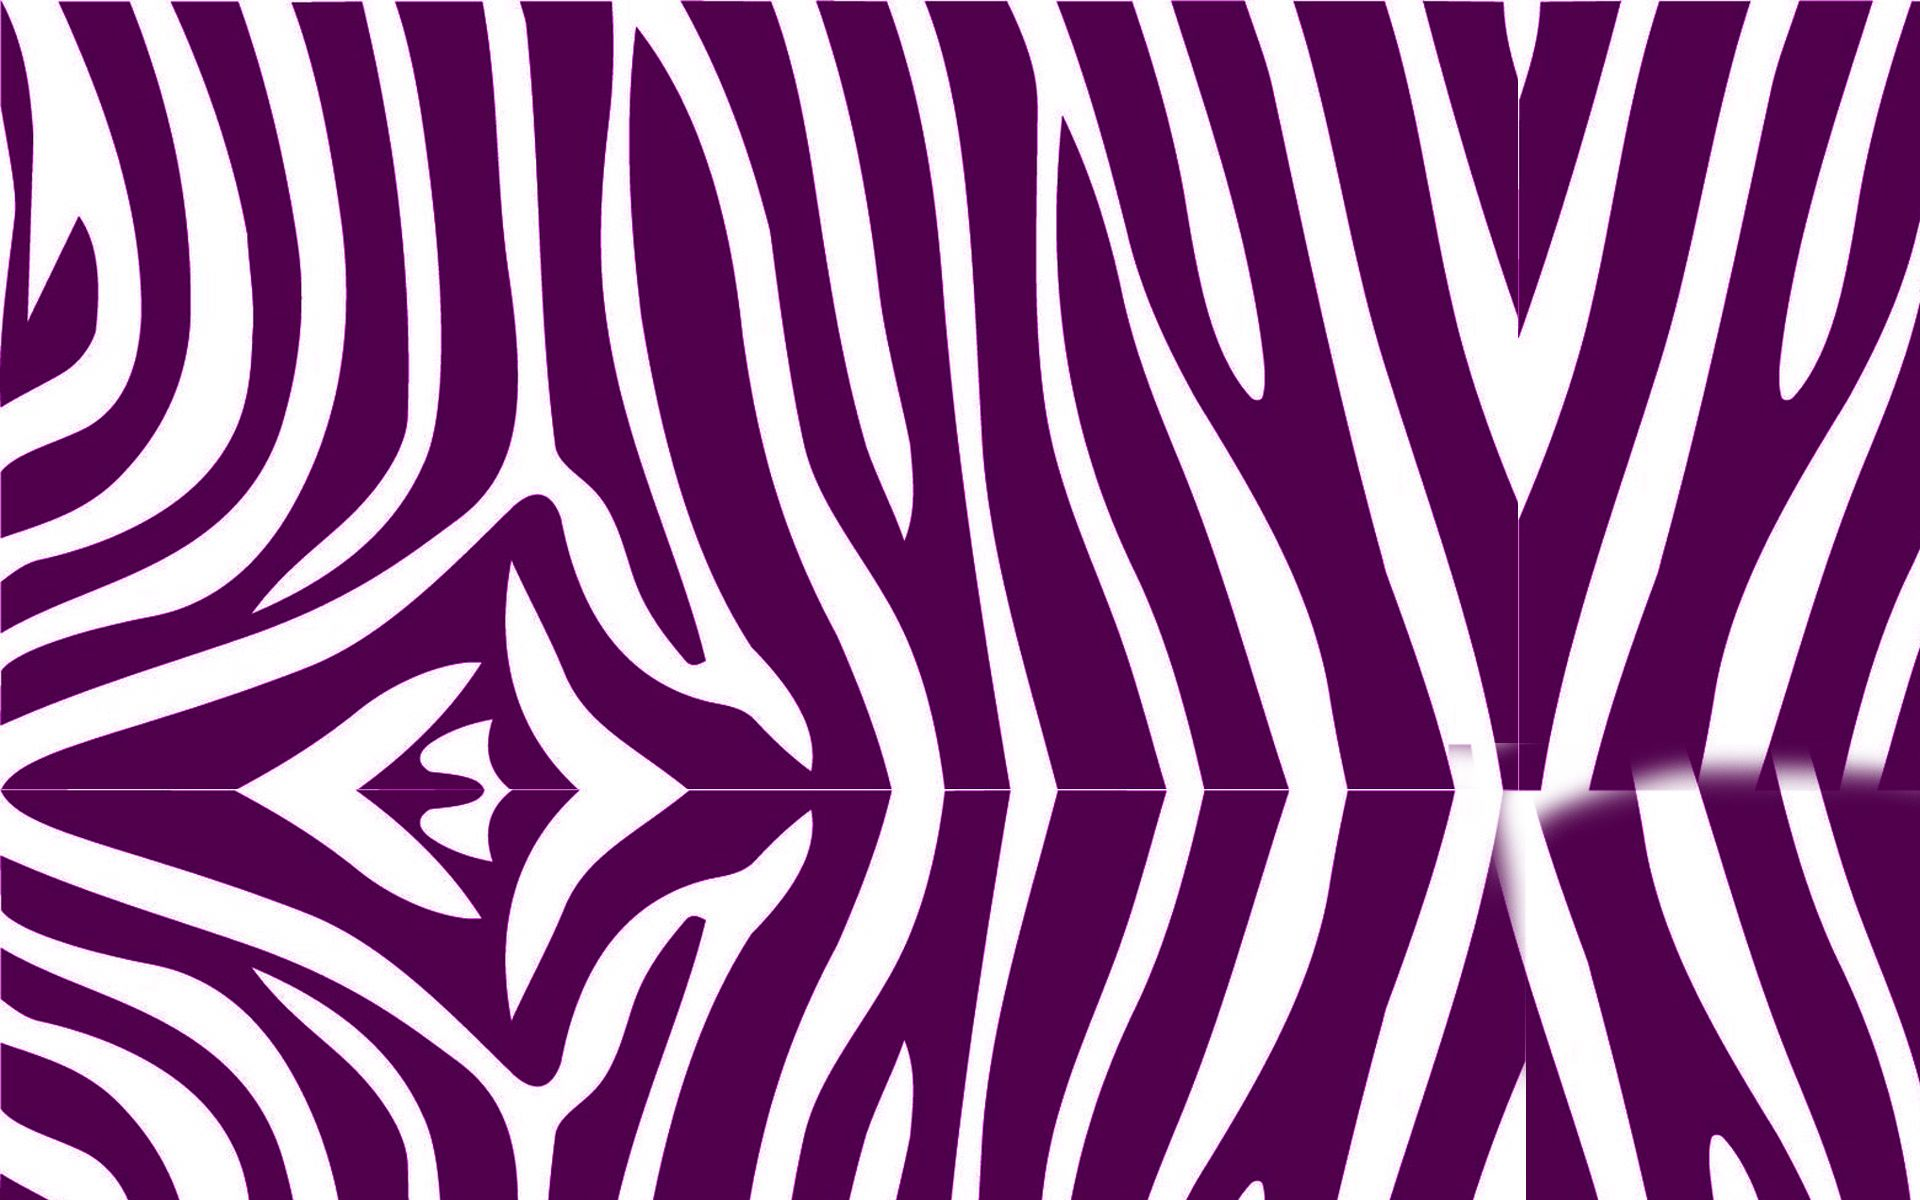 Pink And Black Zebra Print Hd Wallpaper